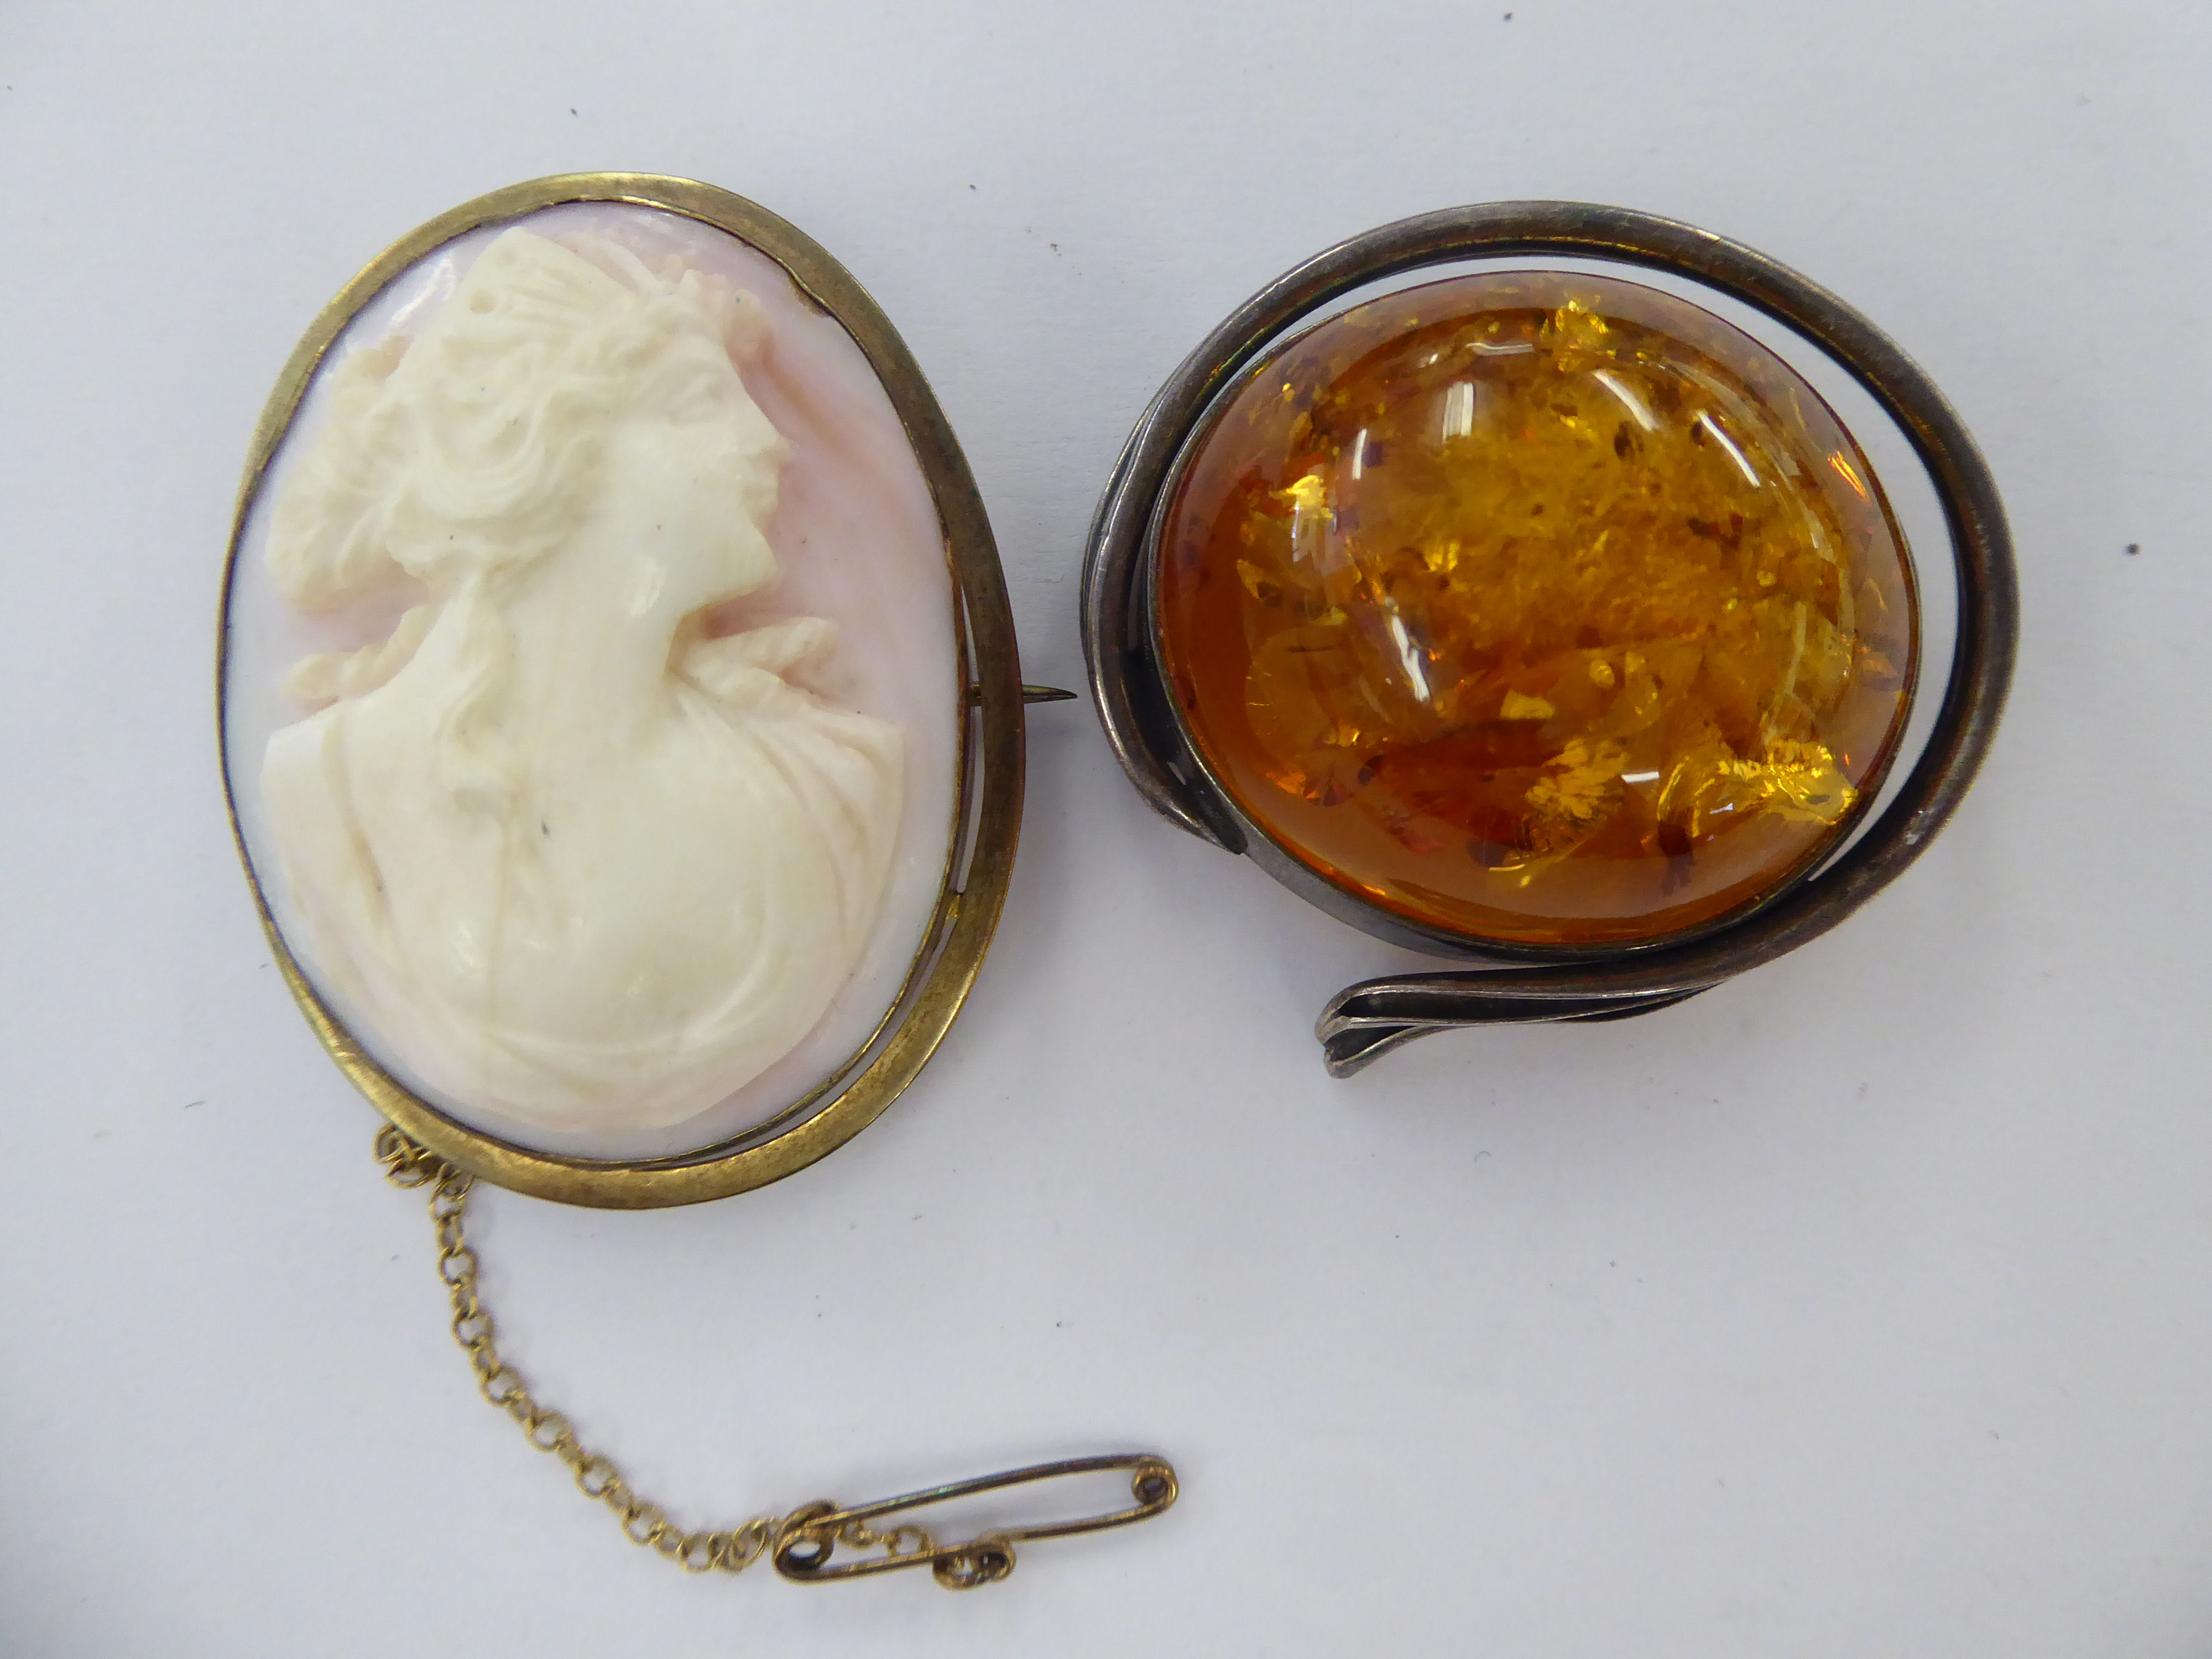 Lot 4 - A late Victorian shell carved cameo brooch, depicting a profile portrait of a lady,